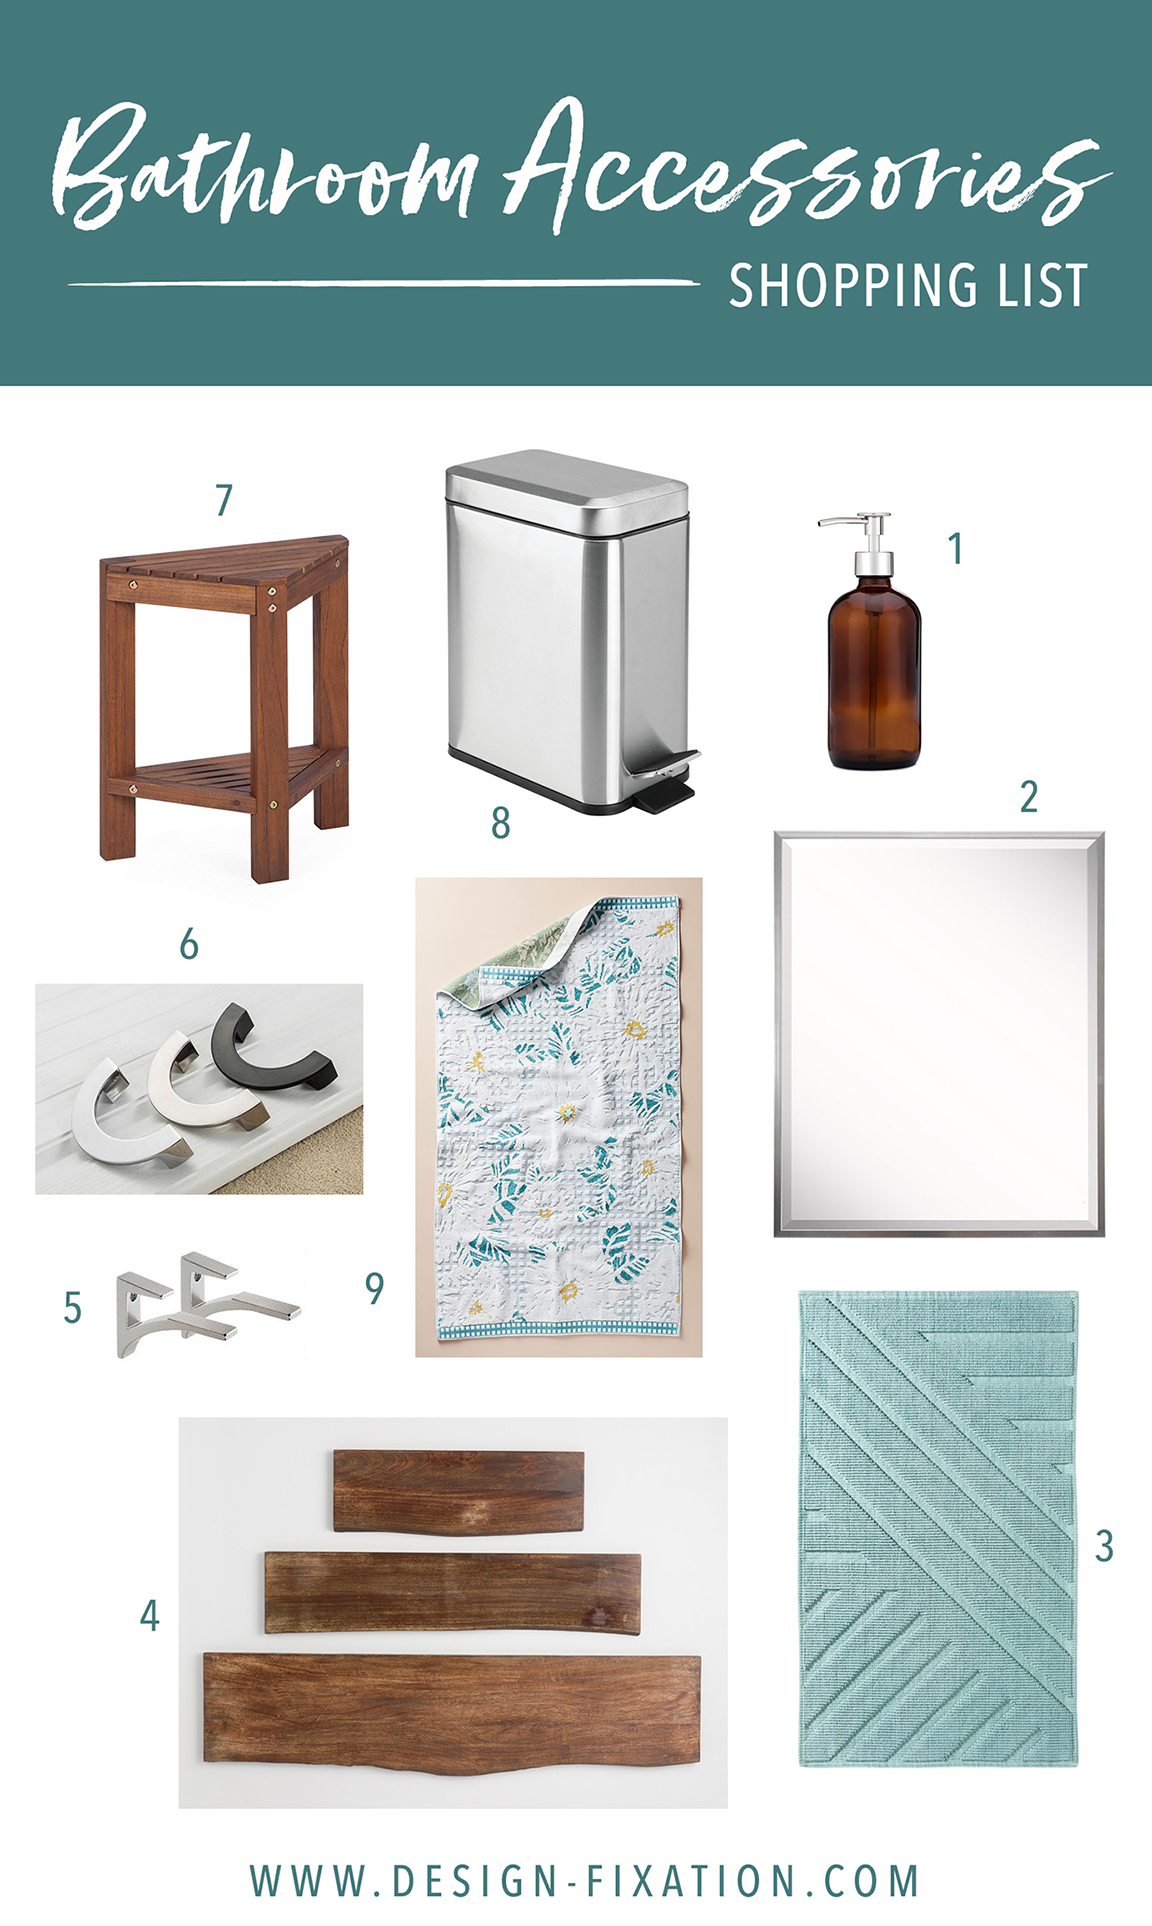 One Room Challenge Bathroom Accessories Shopping List Major